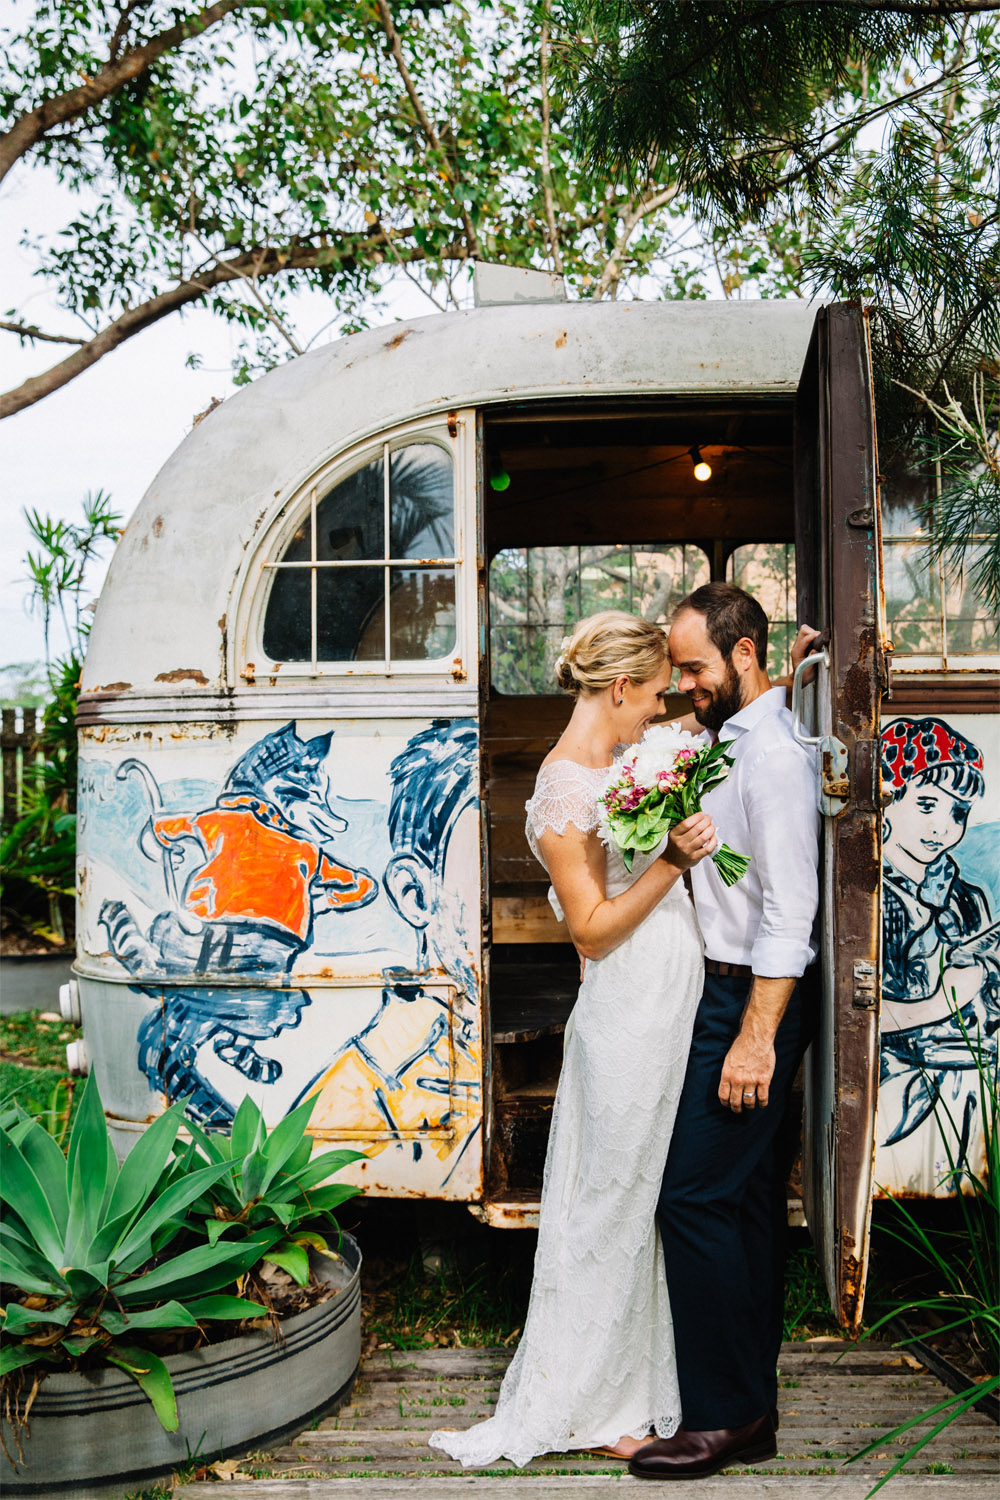 Rob and Anita - Byron Bay Wedding - Lovestruck Weddings